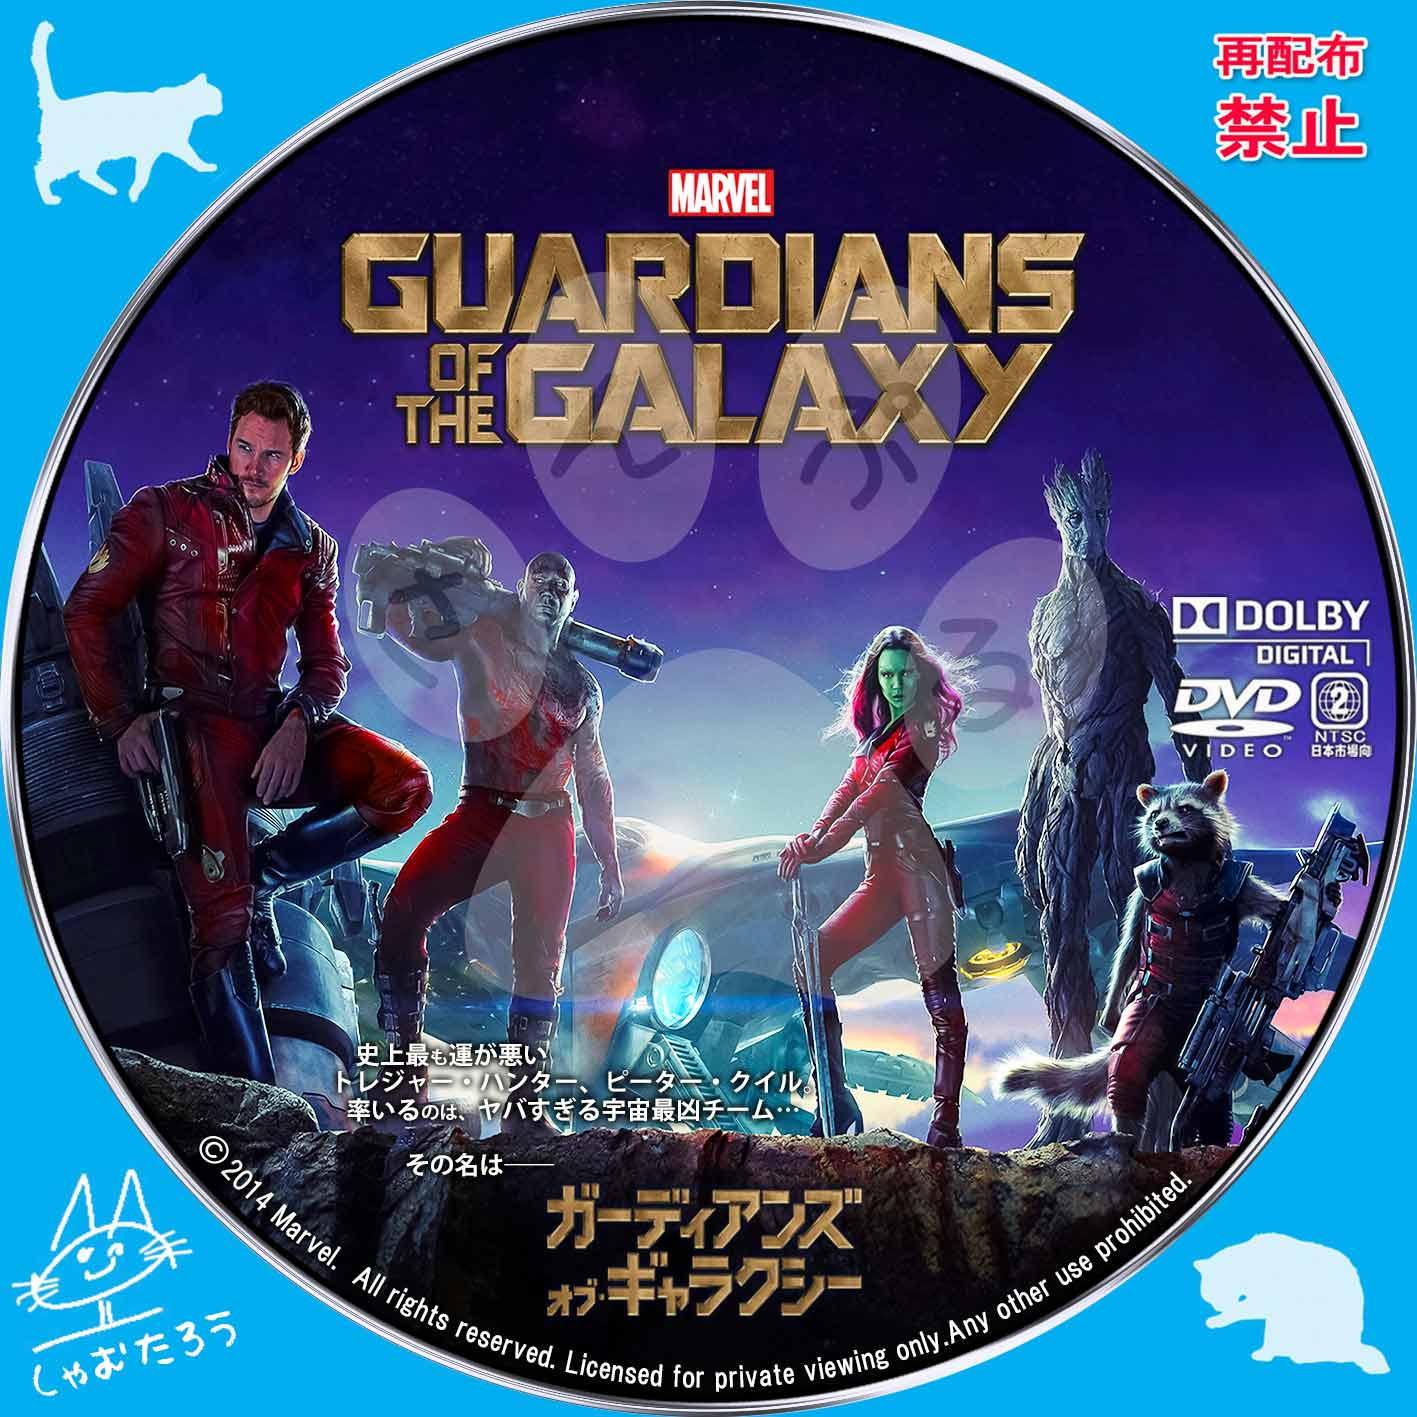 Guardians of the galaxy dvd release date december 9 2014 pictures to